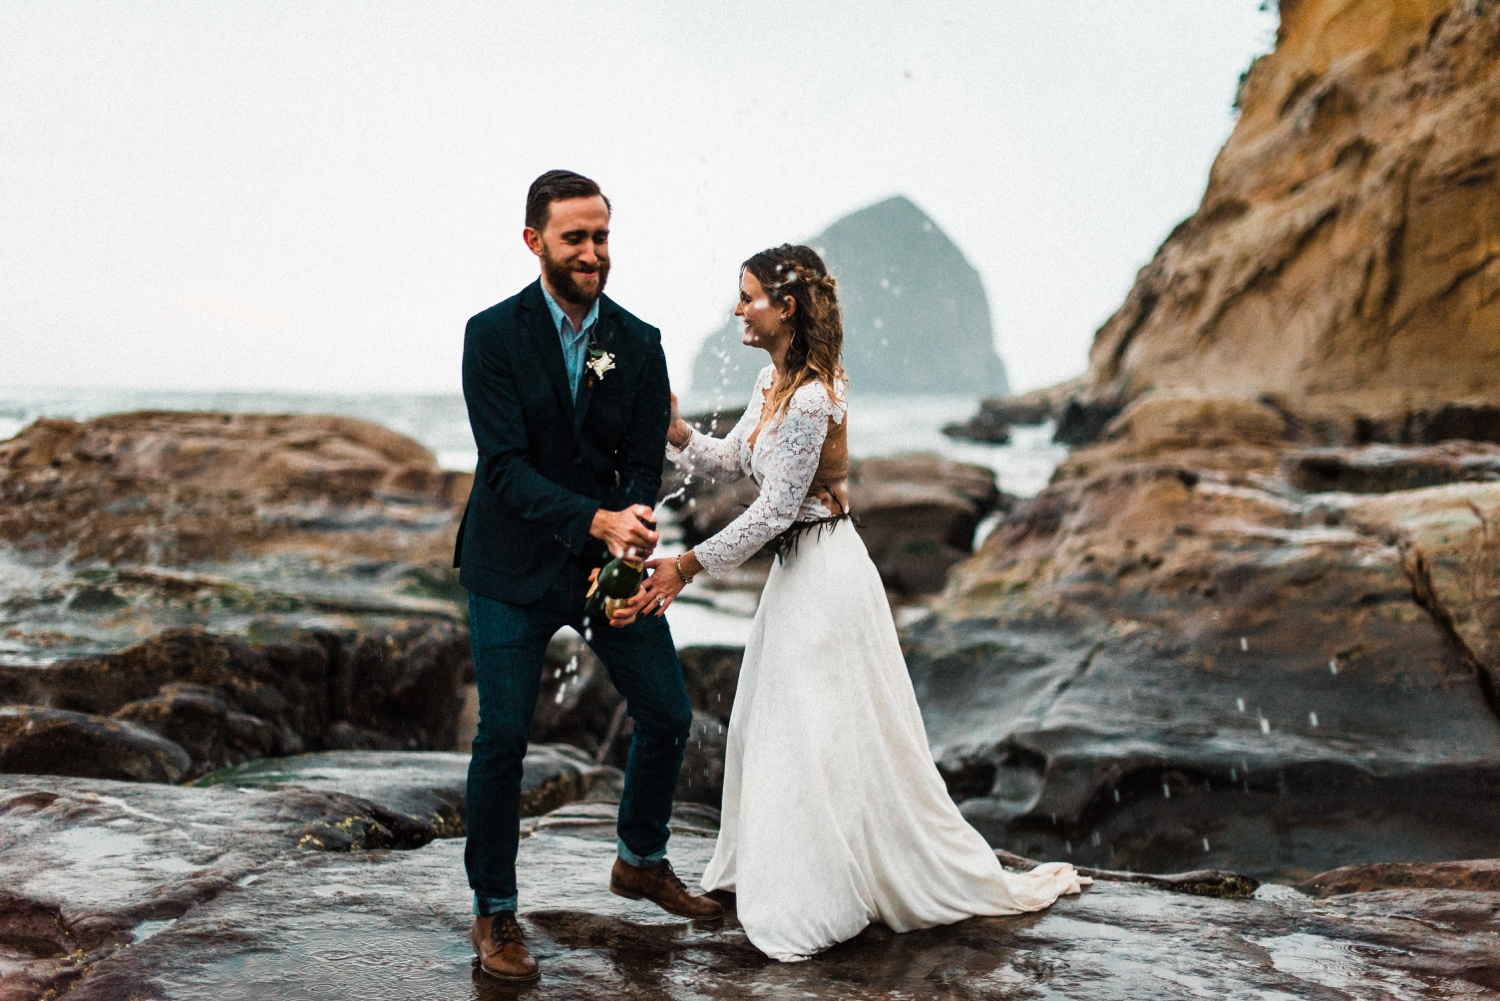 Oregon_Coast_Elopement_Wedding_The_Foxes_Photography_166-2.jpg